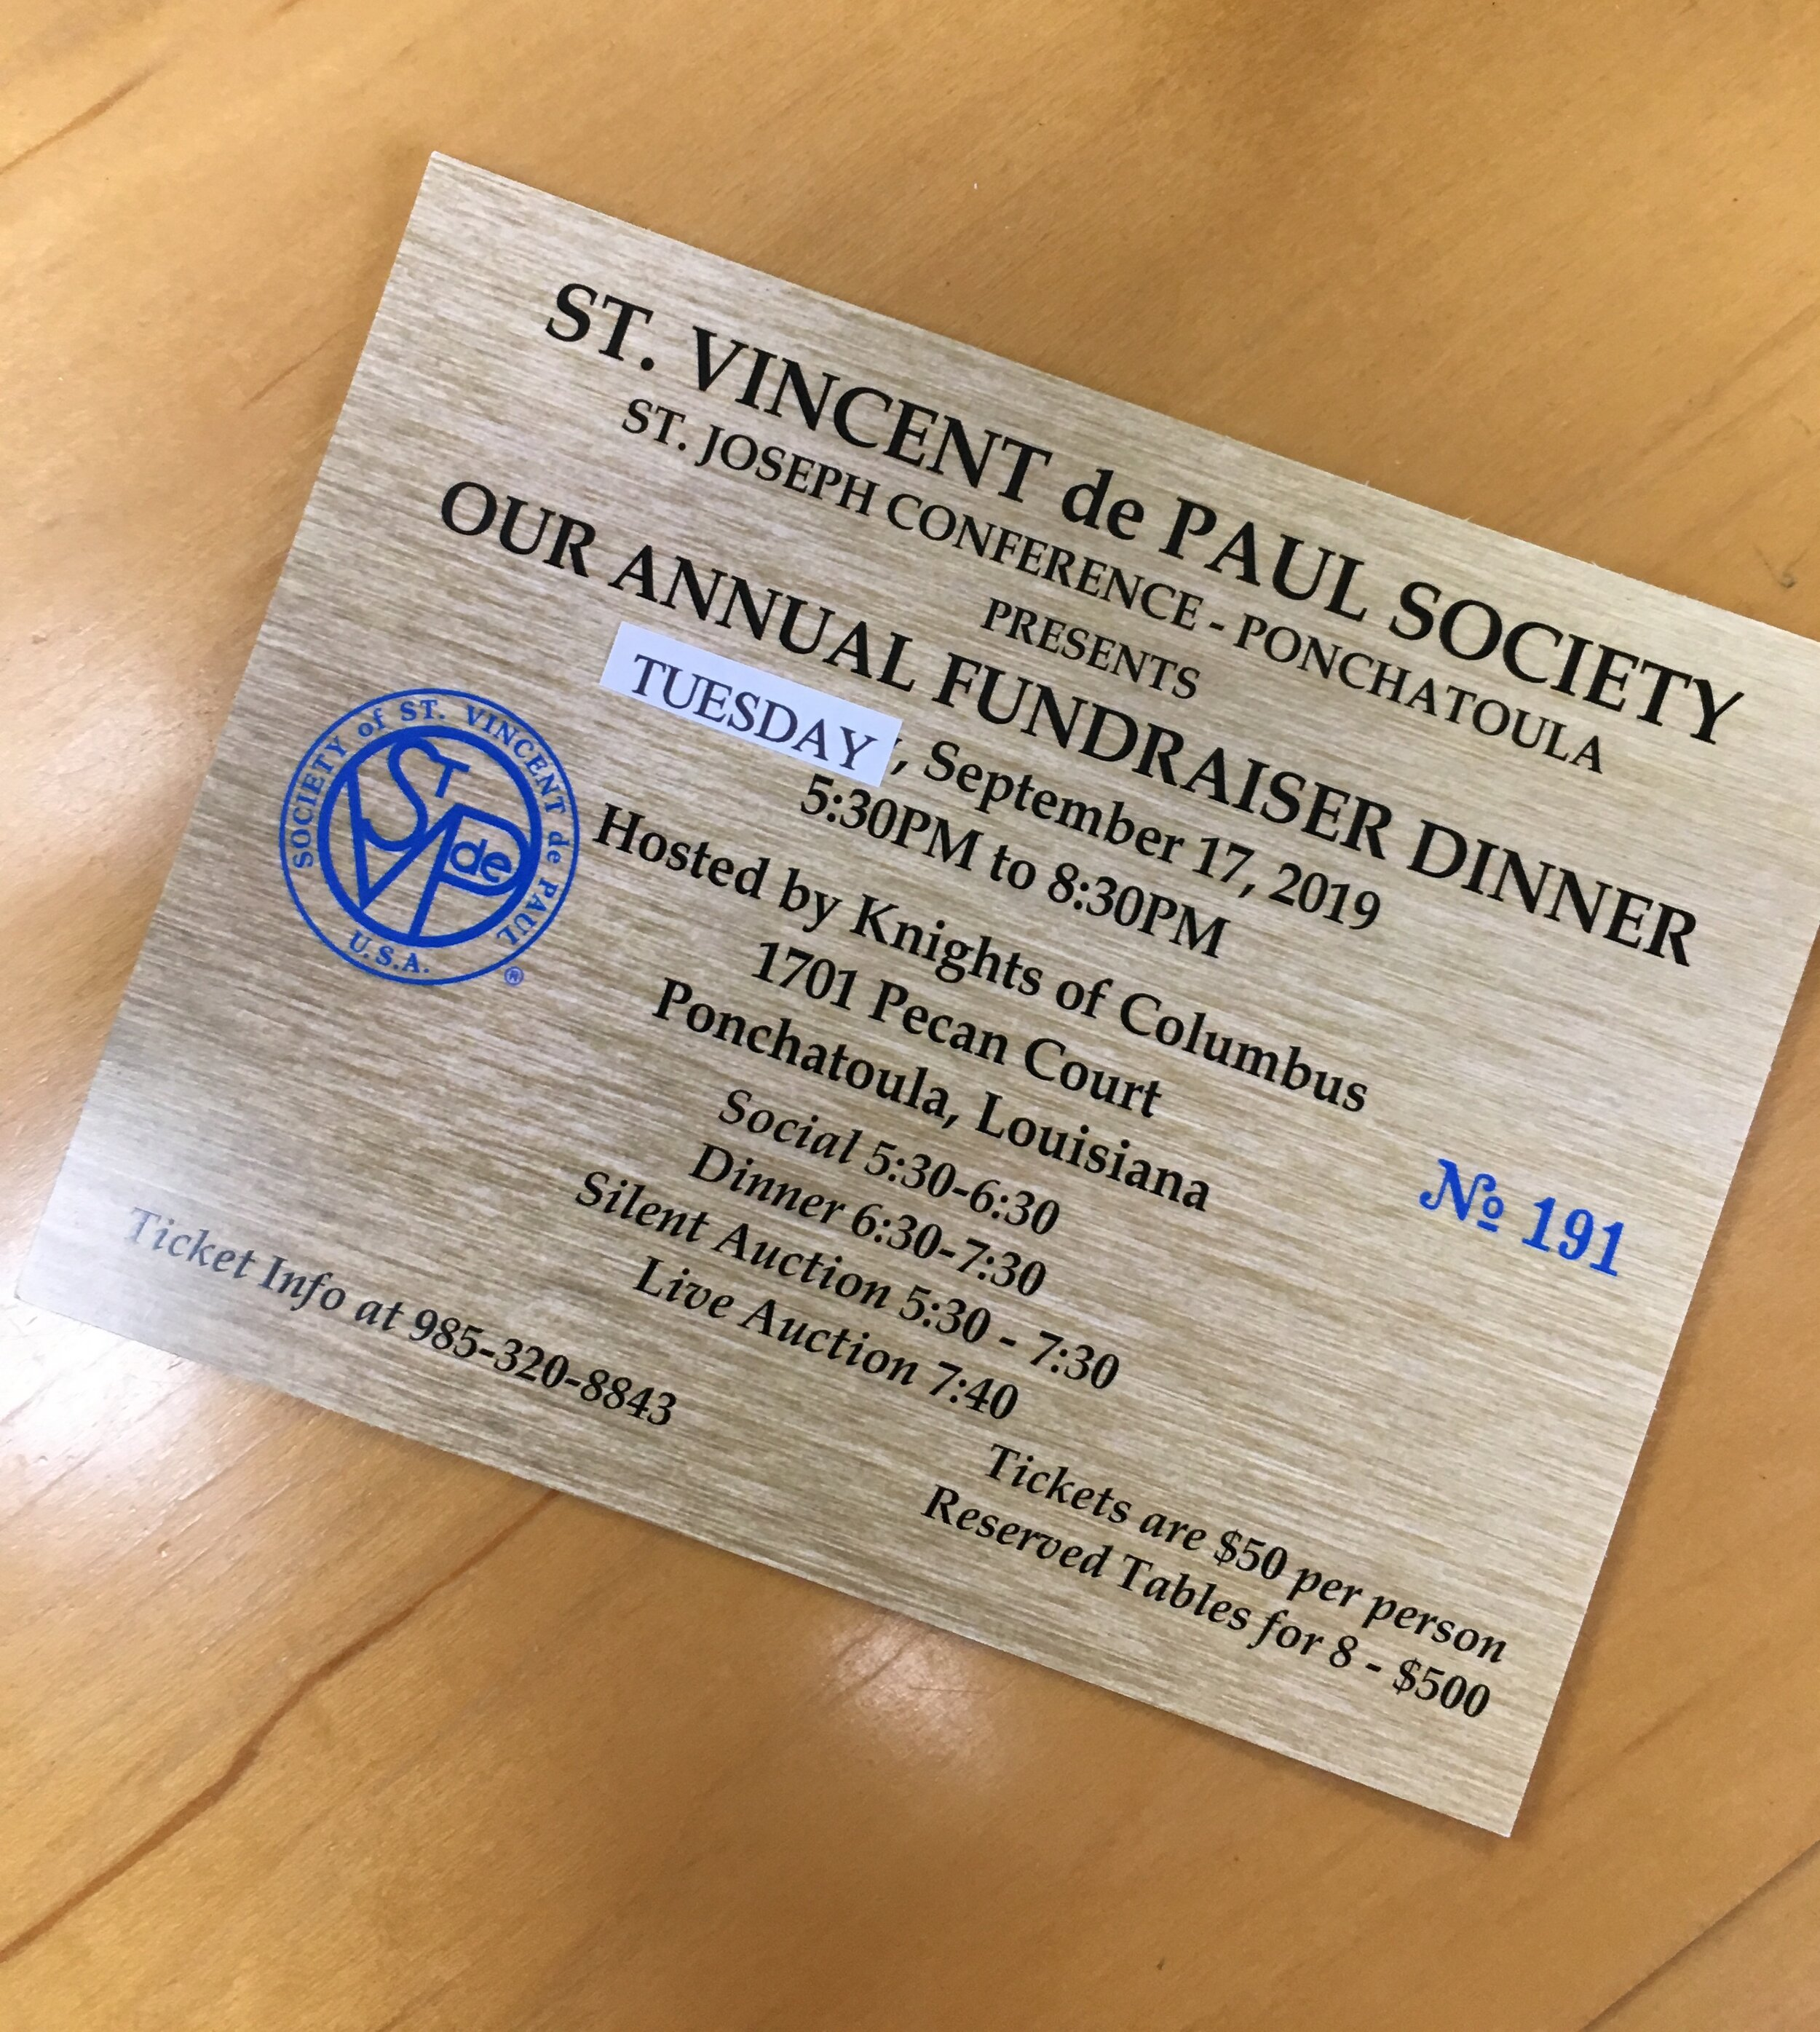 Saint Vincent de Paul Fundraiser Dinner.jpg